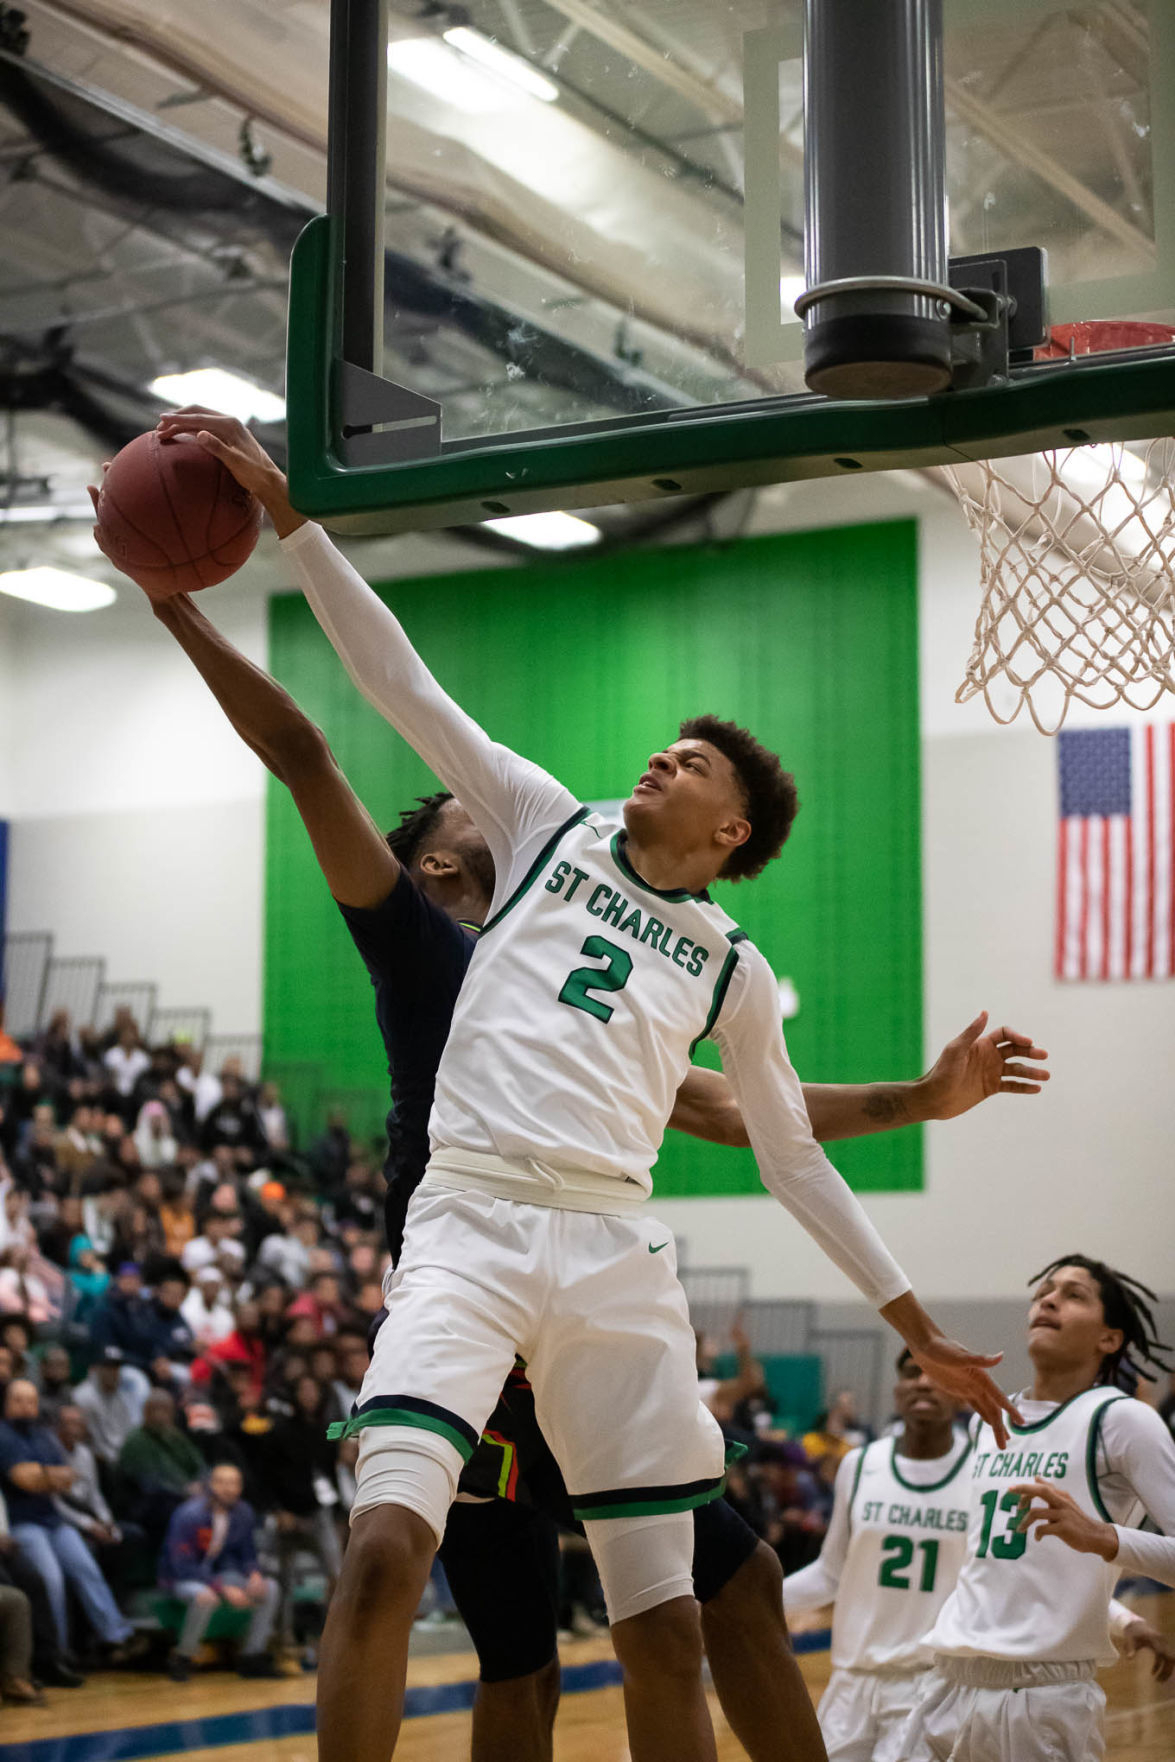 St. Charles Boys Basketball Falls To Poly In Class 3A within Schedule For St. Charles Community College2022